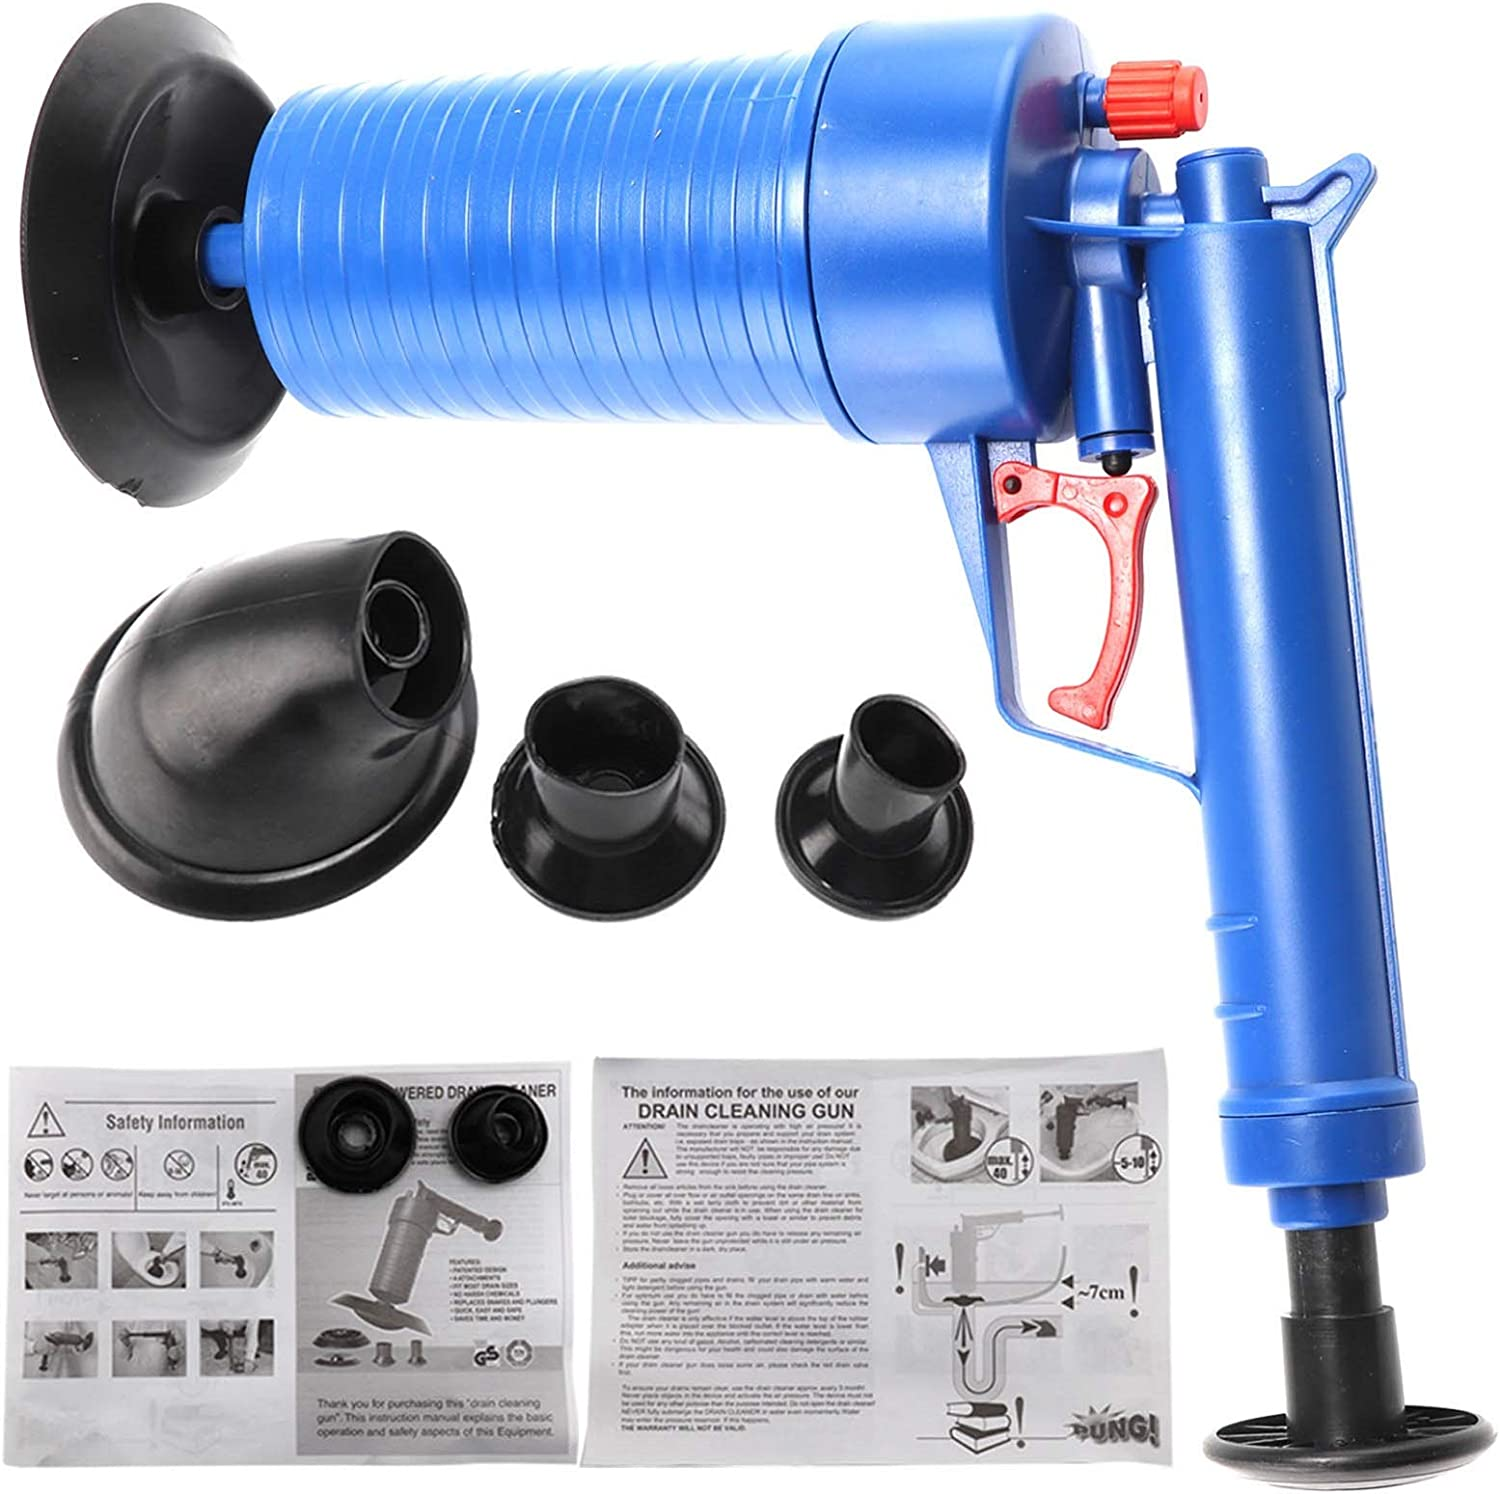 9cm Sink Plunger Toilet Plunger Kitchen Sink Sewer Dredge Tool Wiht 4 Suction Cups 28.6 Trintion Drain Cleaning Tool Toilet Plunger 28.6